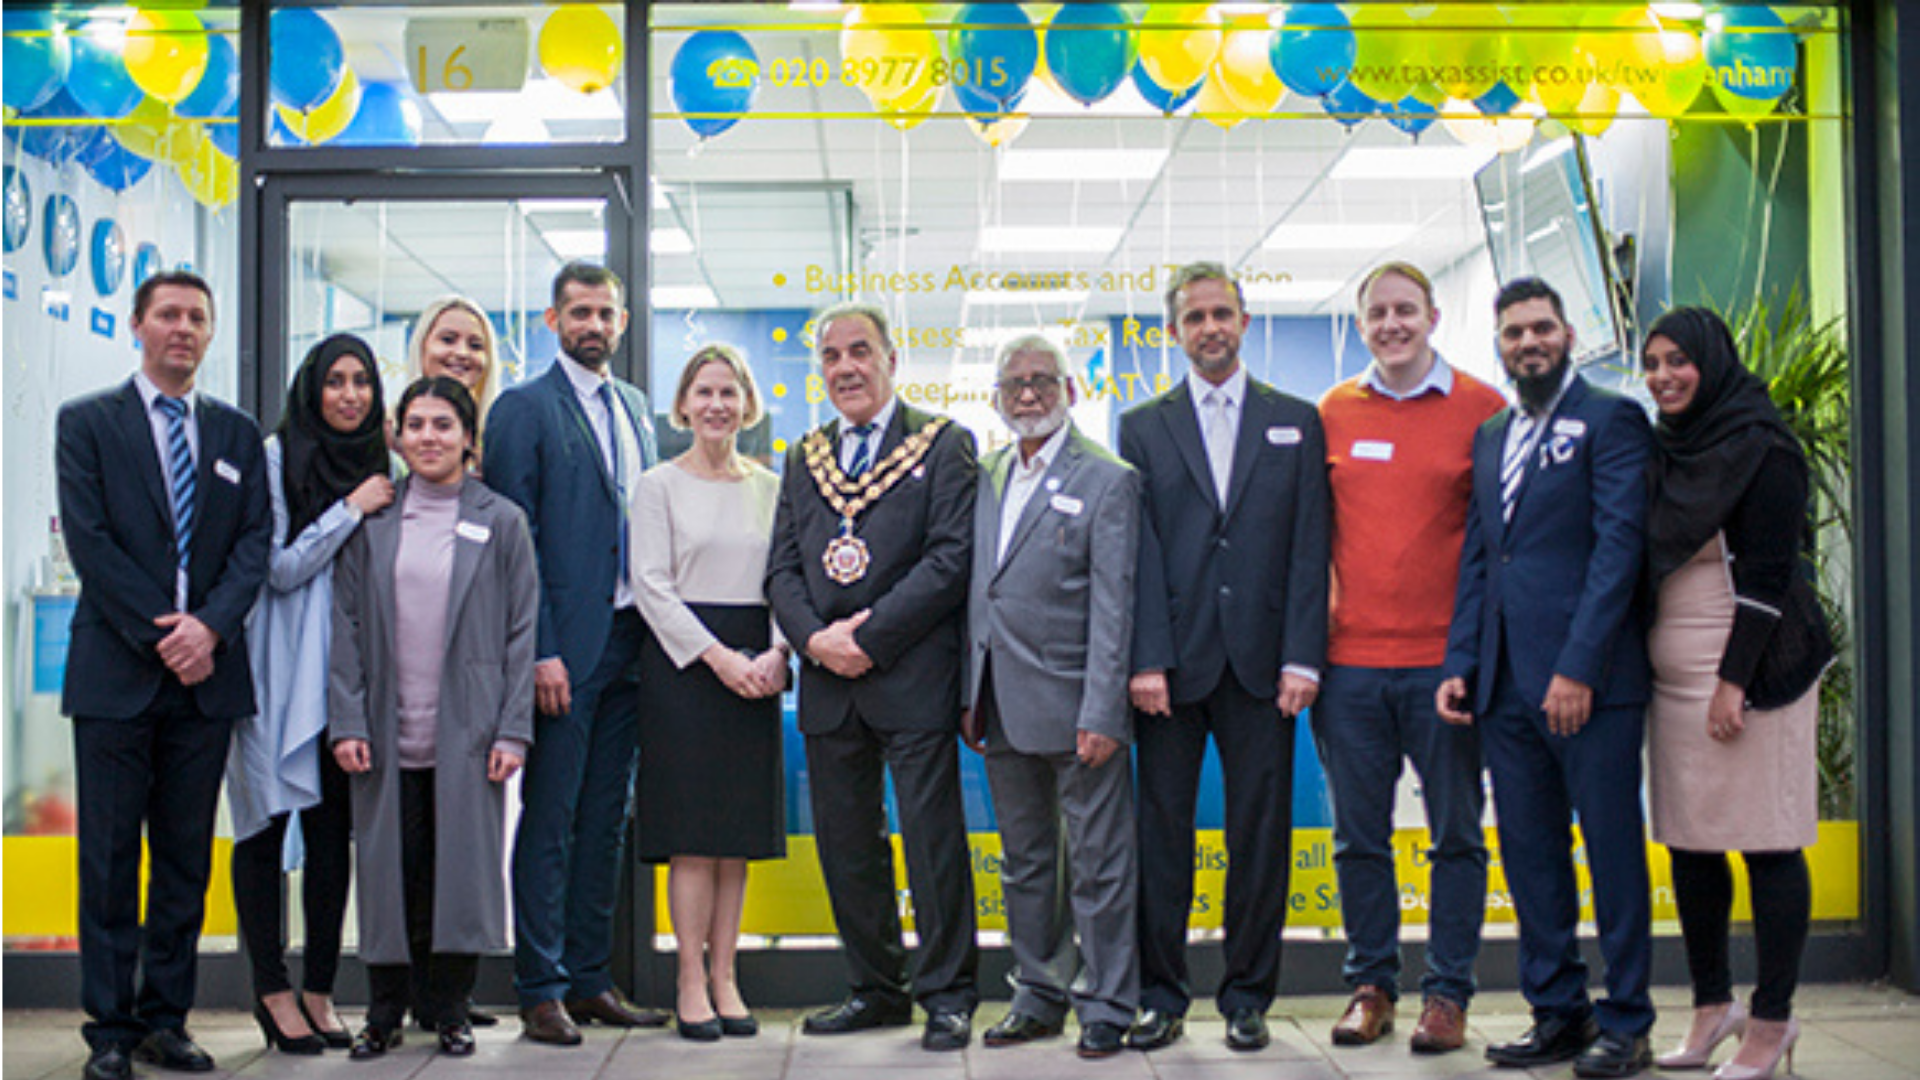 Family celebrates new shop opening and 20 years of business success with TaxAssist Accountants